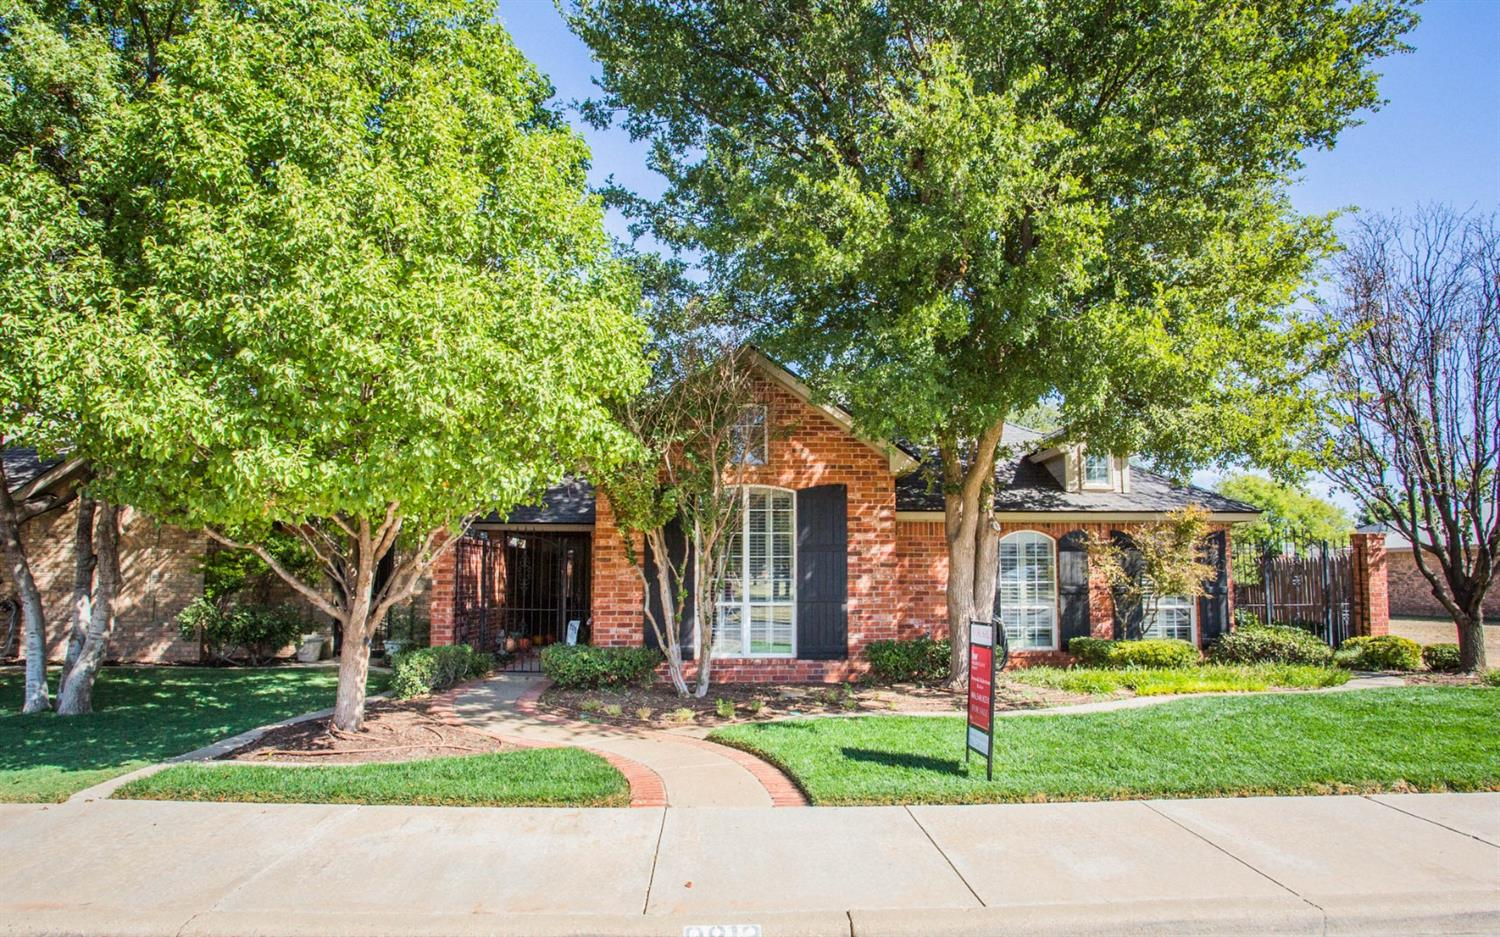 This cute garden home has it all! From hardwood floors, zoned heating and air conditioning, to newly renovated spare shower! It is in a great area with awesome curb appeal!!